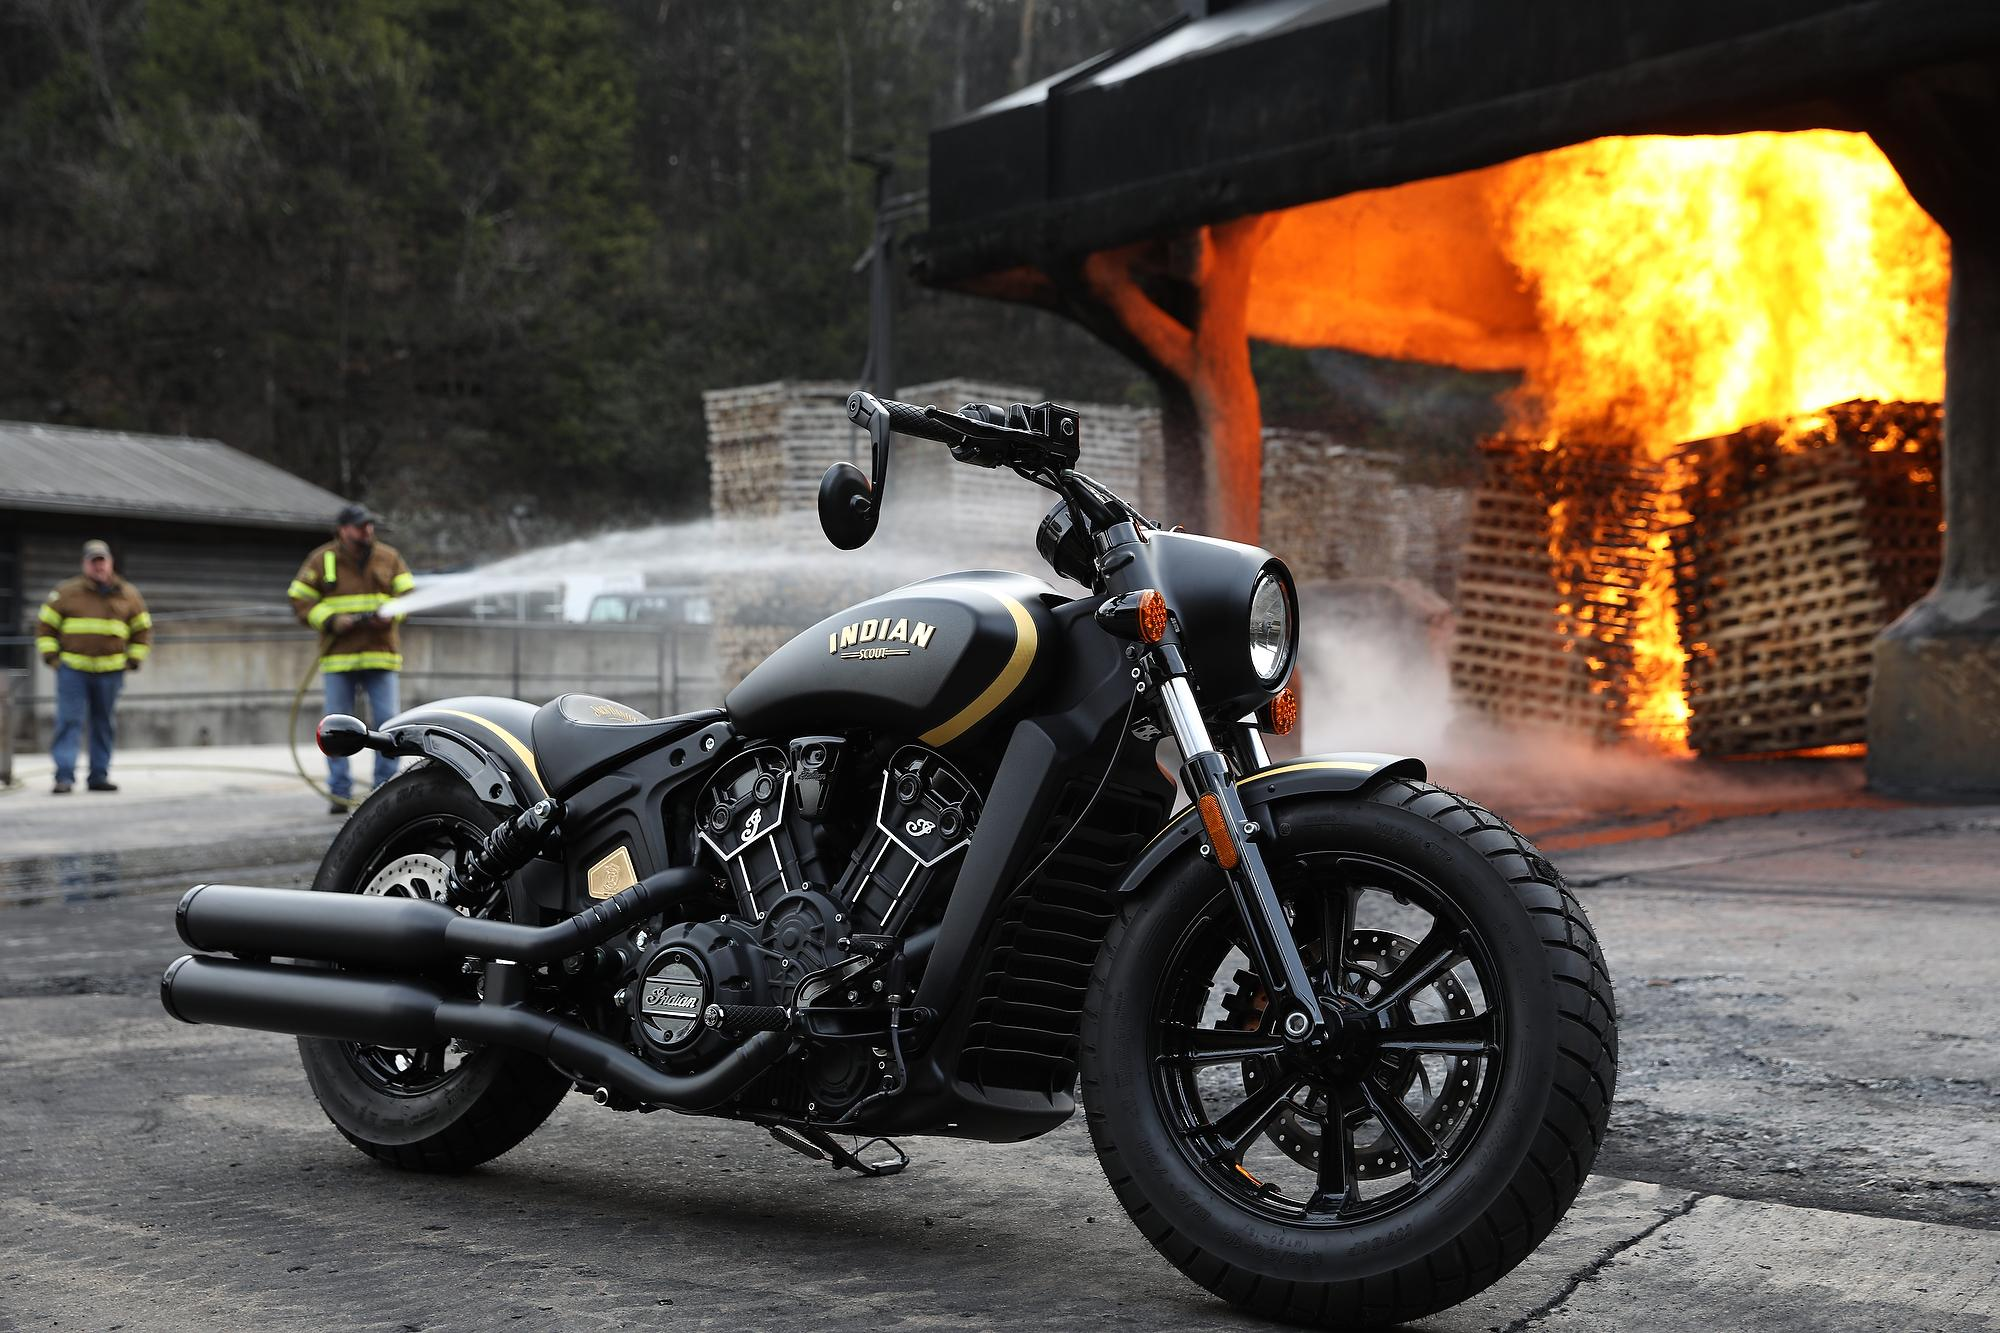 Harley Davidson  Fire Department Limited Edition